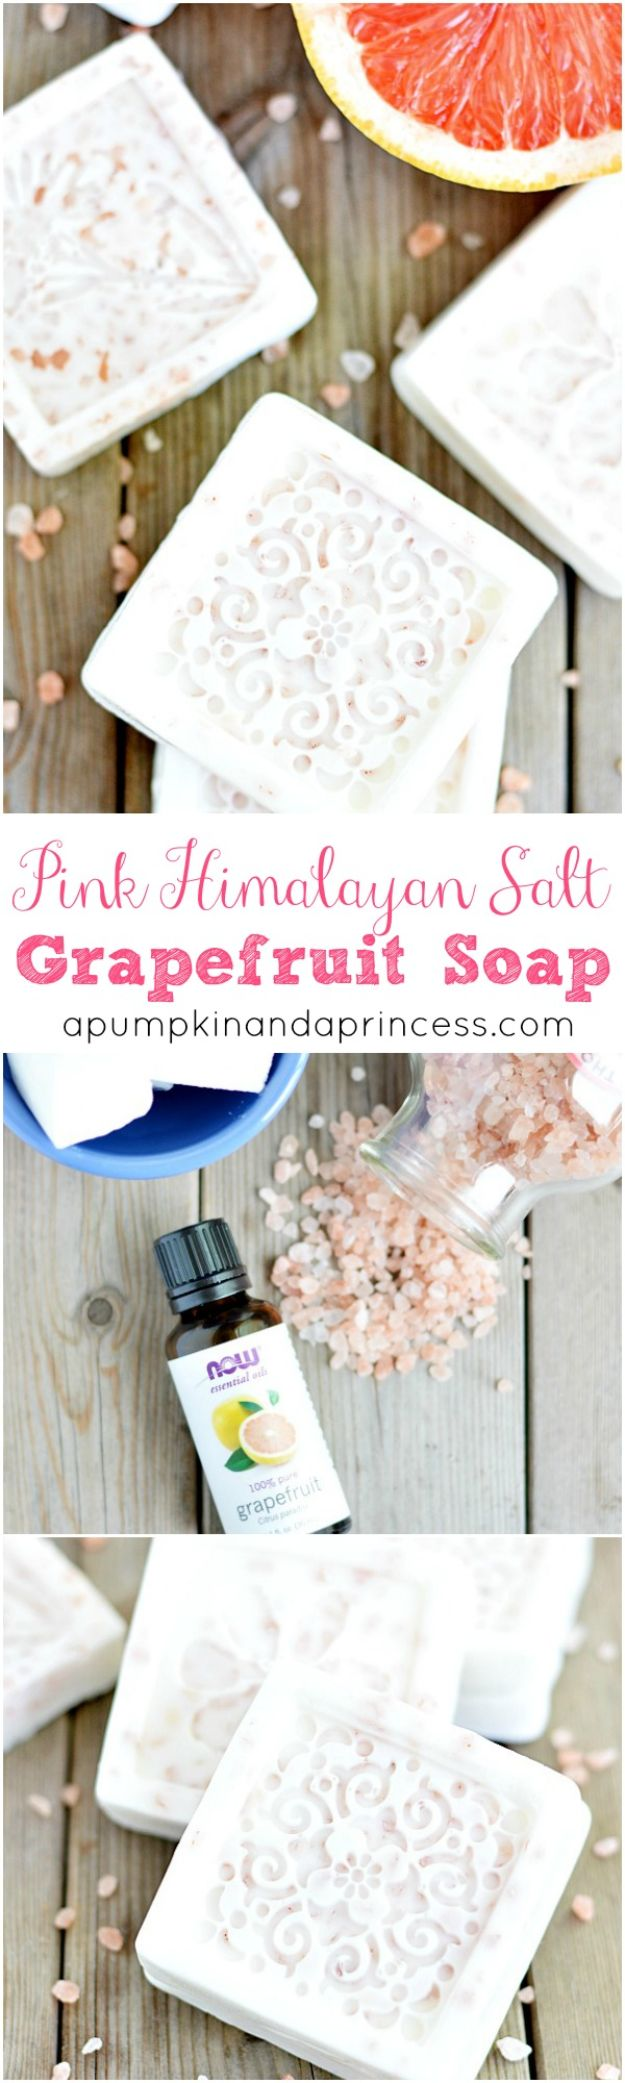 Cool Soaps To Make At Home - Pink Himalayan Salt Grapefruit Soap - DIY Soap Recipes and Ideas - Best Soap Tutorials for Soap Making Without Lye - Easy Cold Process Melt and Pour Tips for Beginners - Crockpot, Essential Oils, Homemade Natural Soaps and Products - Creative Crafts and DIY for Teens, Kids and Adults http://diyprojectsforteens.com/cool-soaps-to-make